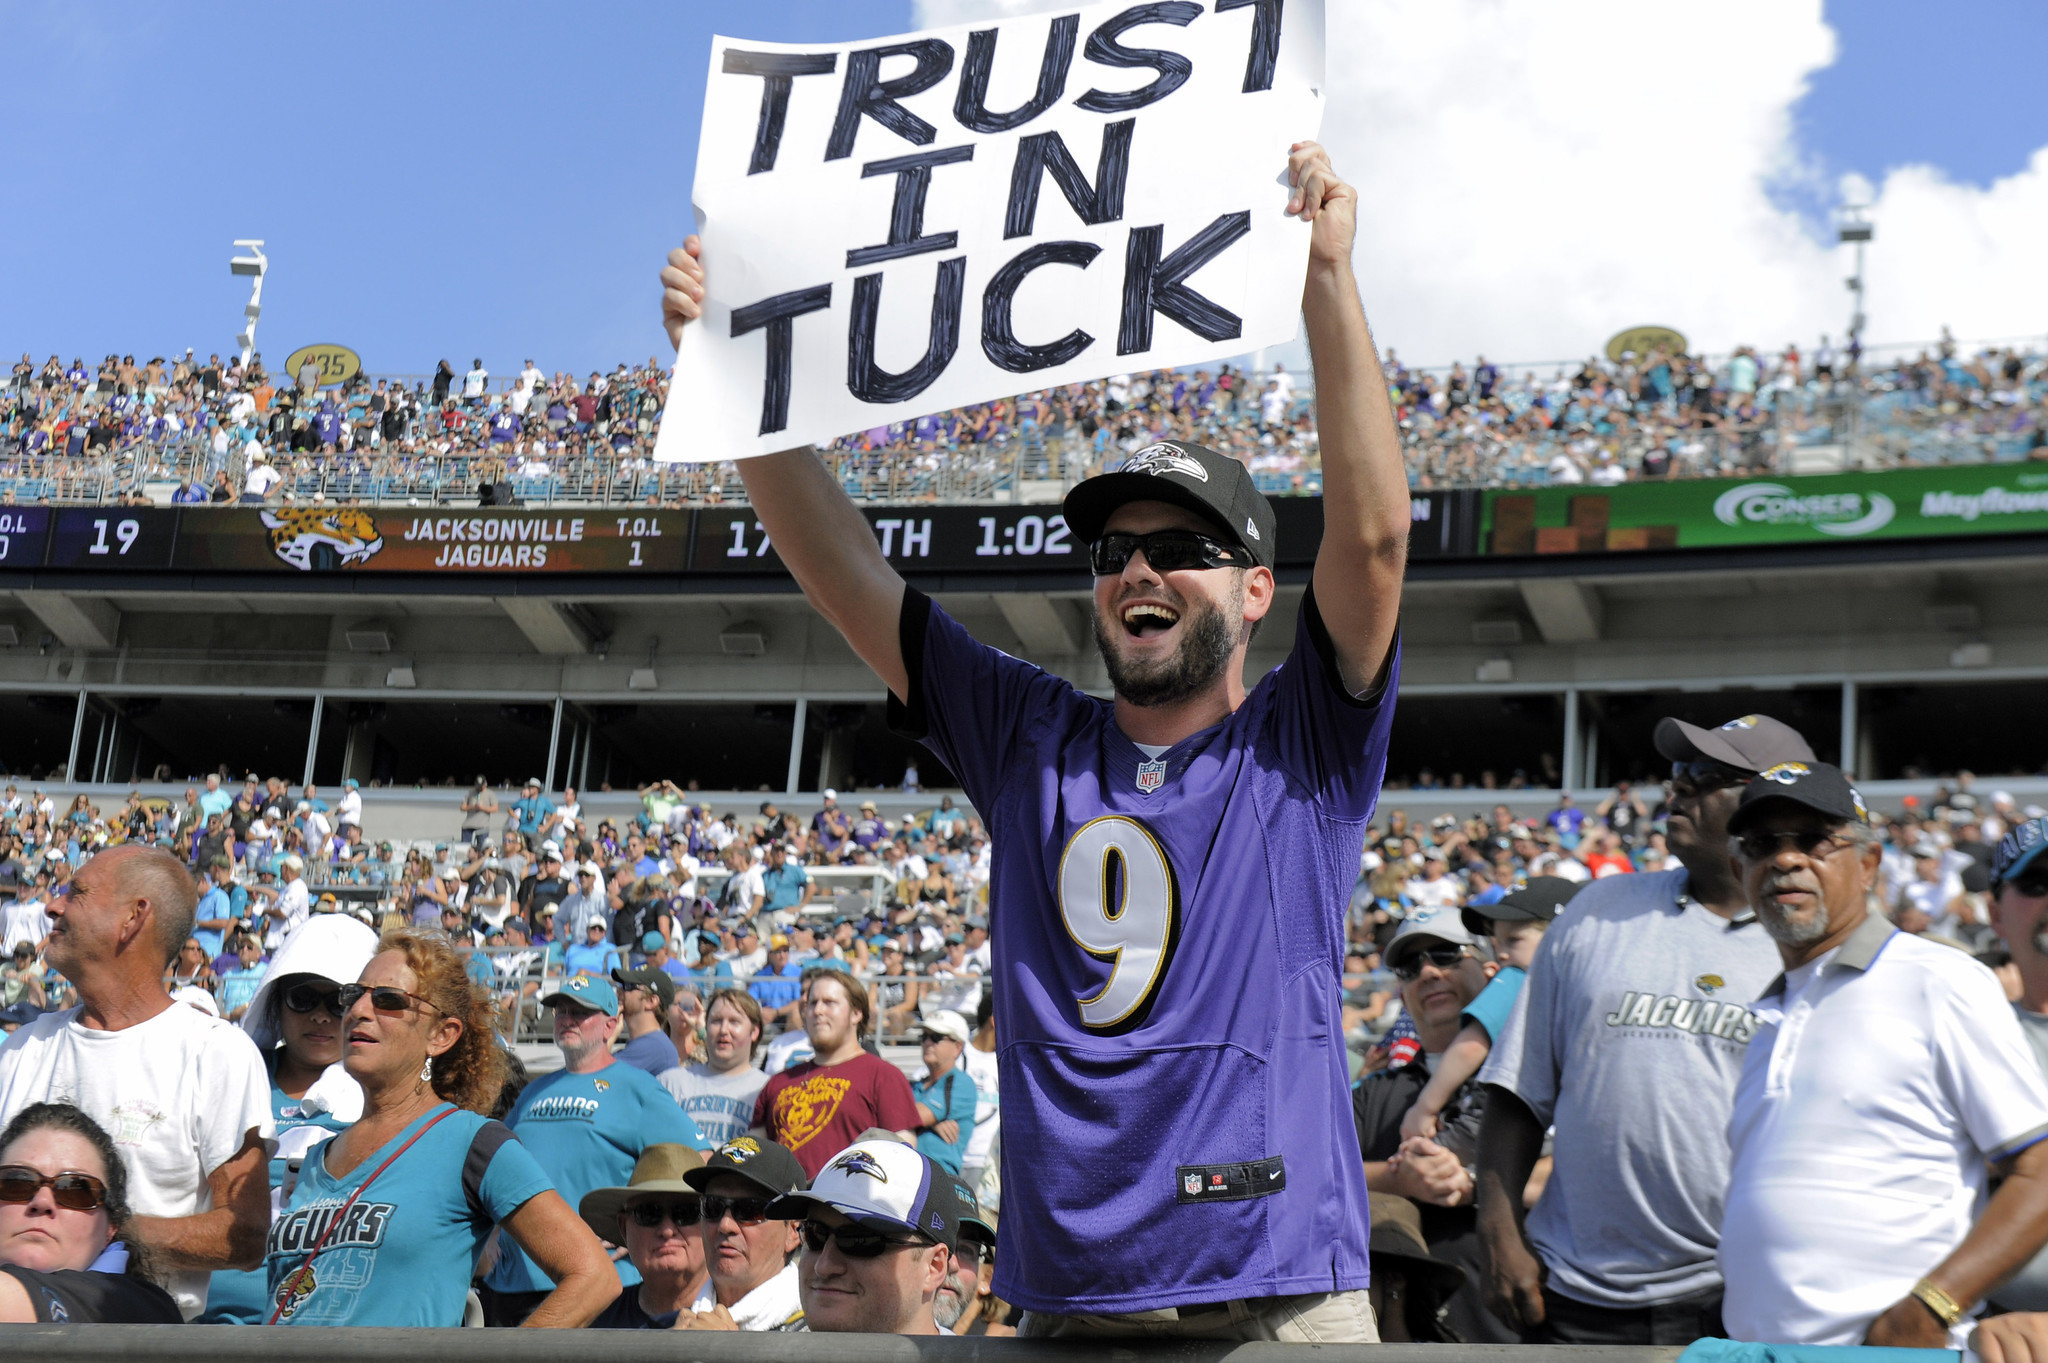 Bal-5-things-we-learned-from-the-ravens-win-over-the-jaguars-20160925